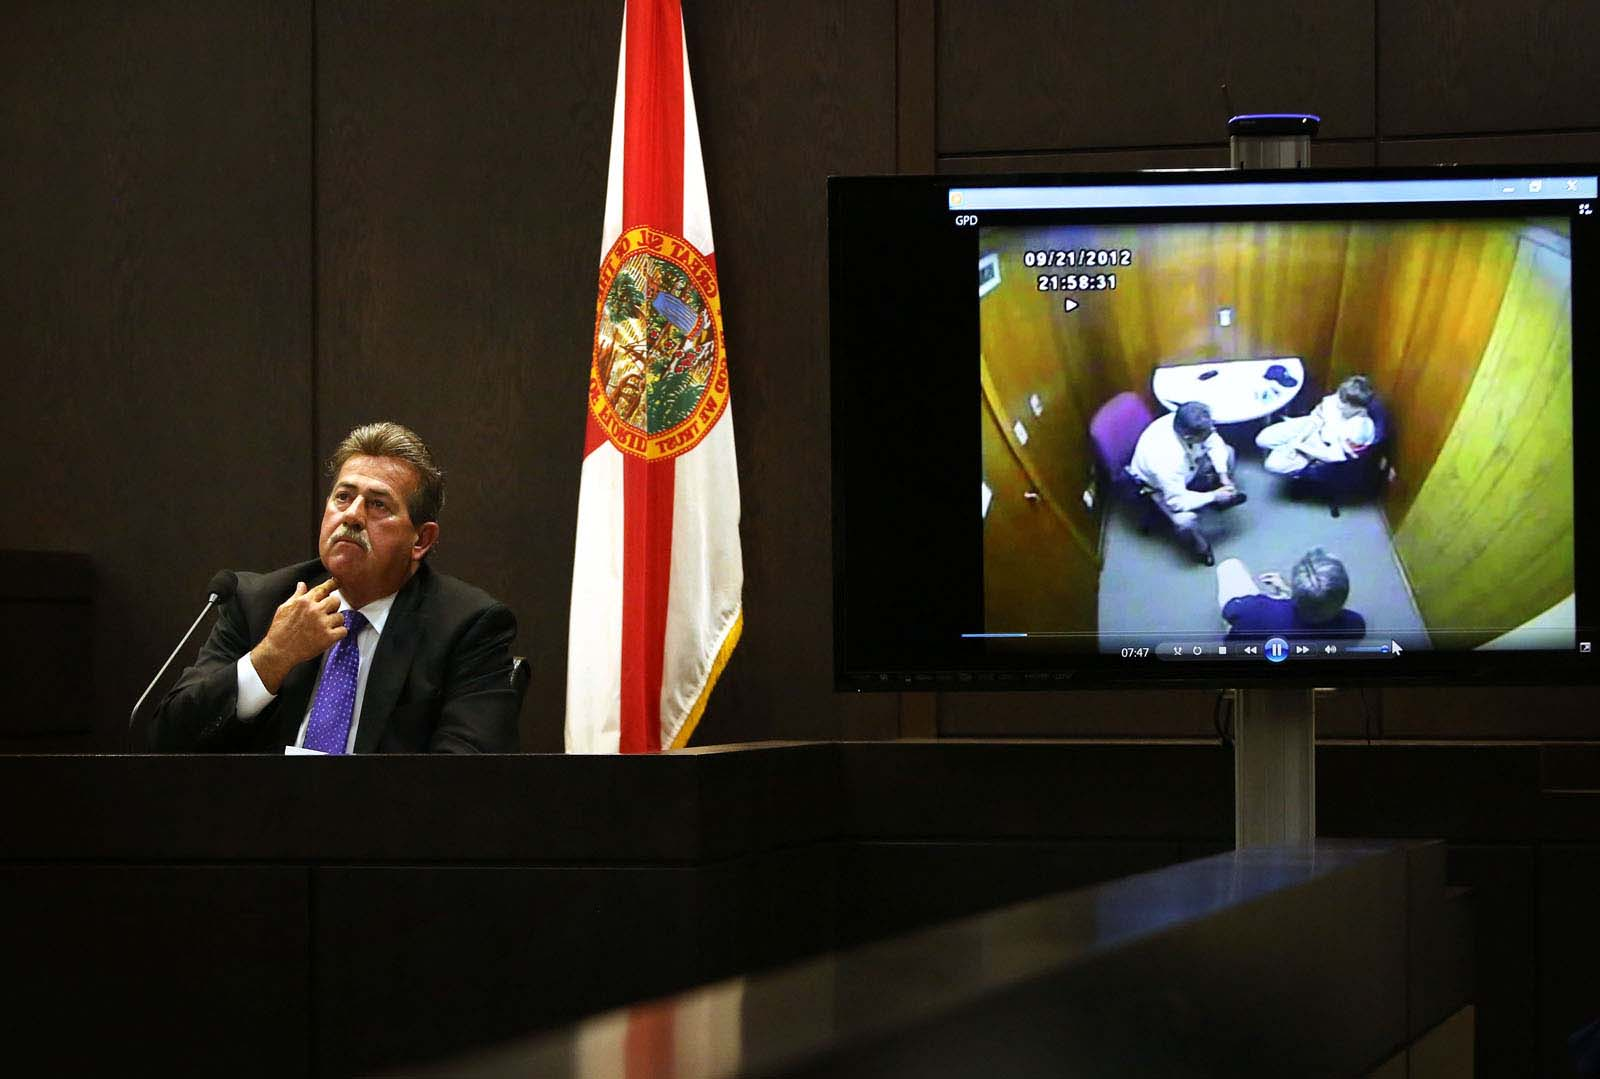 Gainesville Police Det. Randy Roberts listens to his interview with Pedro Bravo as it's played for the jury during Pedro Bravo's murder trial in courtroom 1B of the Alachua County Criminal Justice Center Monday, August 11, 2014.  Bravo is accused of killing University of Florida student Christian Aguilar.  (Doug Finger/The Gainesville Sun/Pool)